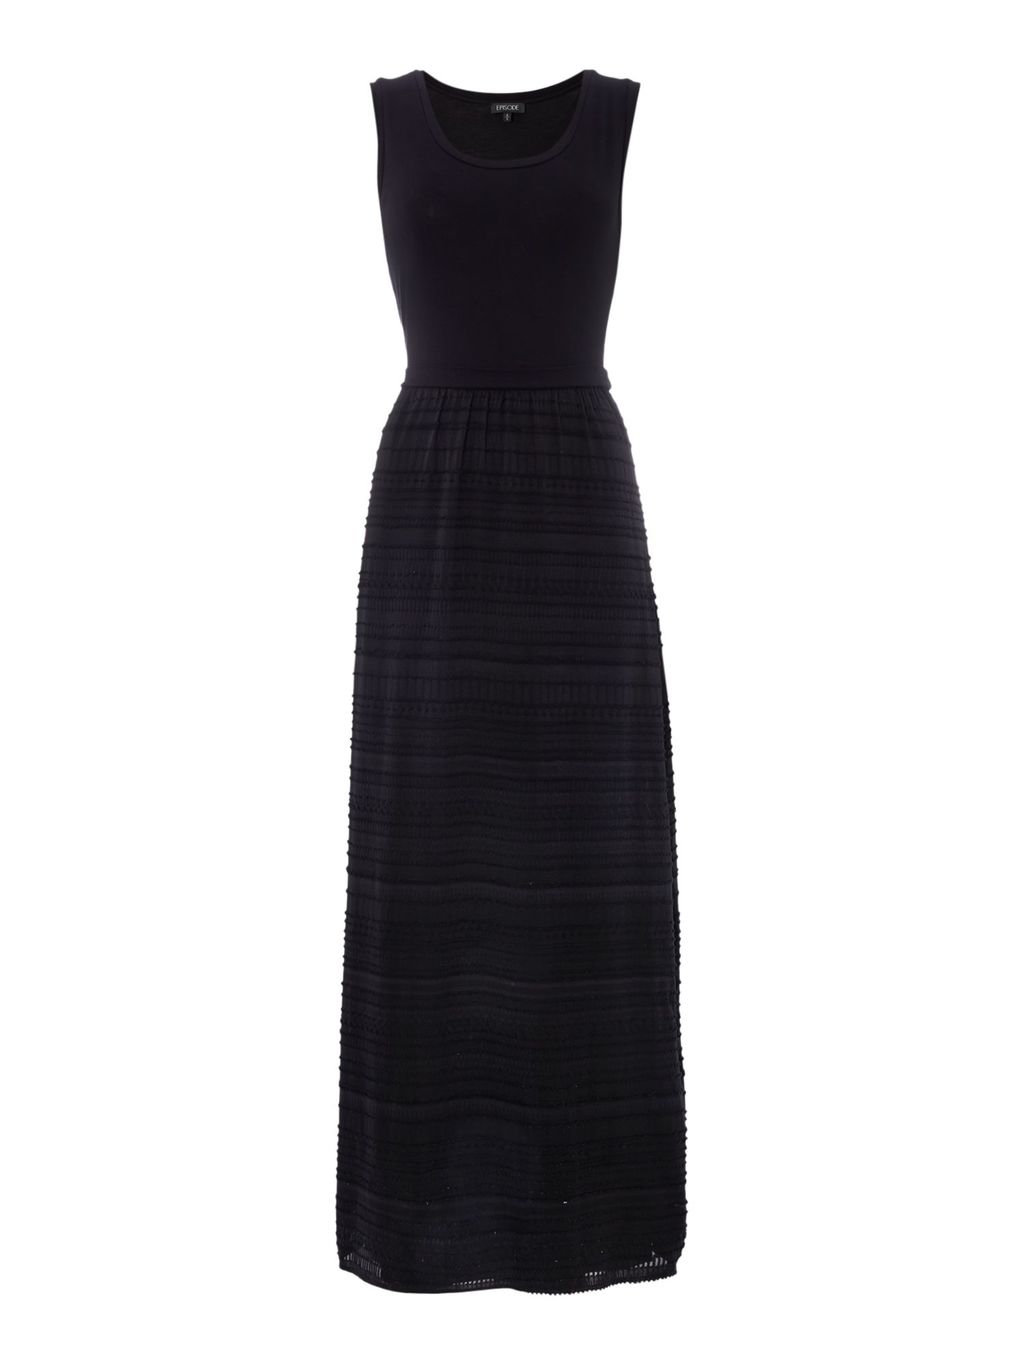 Maxi Dress With 2 Tone Stripe, Black - pattern: horizontal stripes; sleeve style: sleeveless; style: maxi dress; predominant colour: black; occasions: evening; length: floor length; fit: body skimming; fibres: viscose/rayon - stretch; neckline: crew; sleeve length: sleeveless; pattern type: fabric; texture group: jersey - stretchy/drapey; season: s/s 2016; wardrobe: event